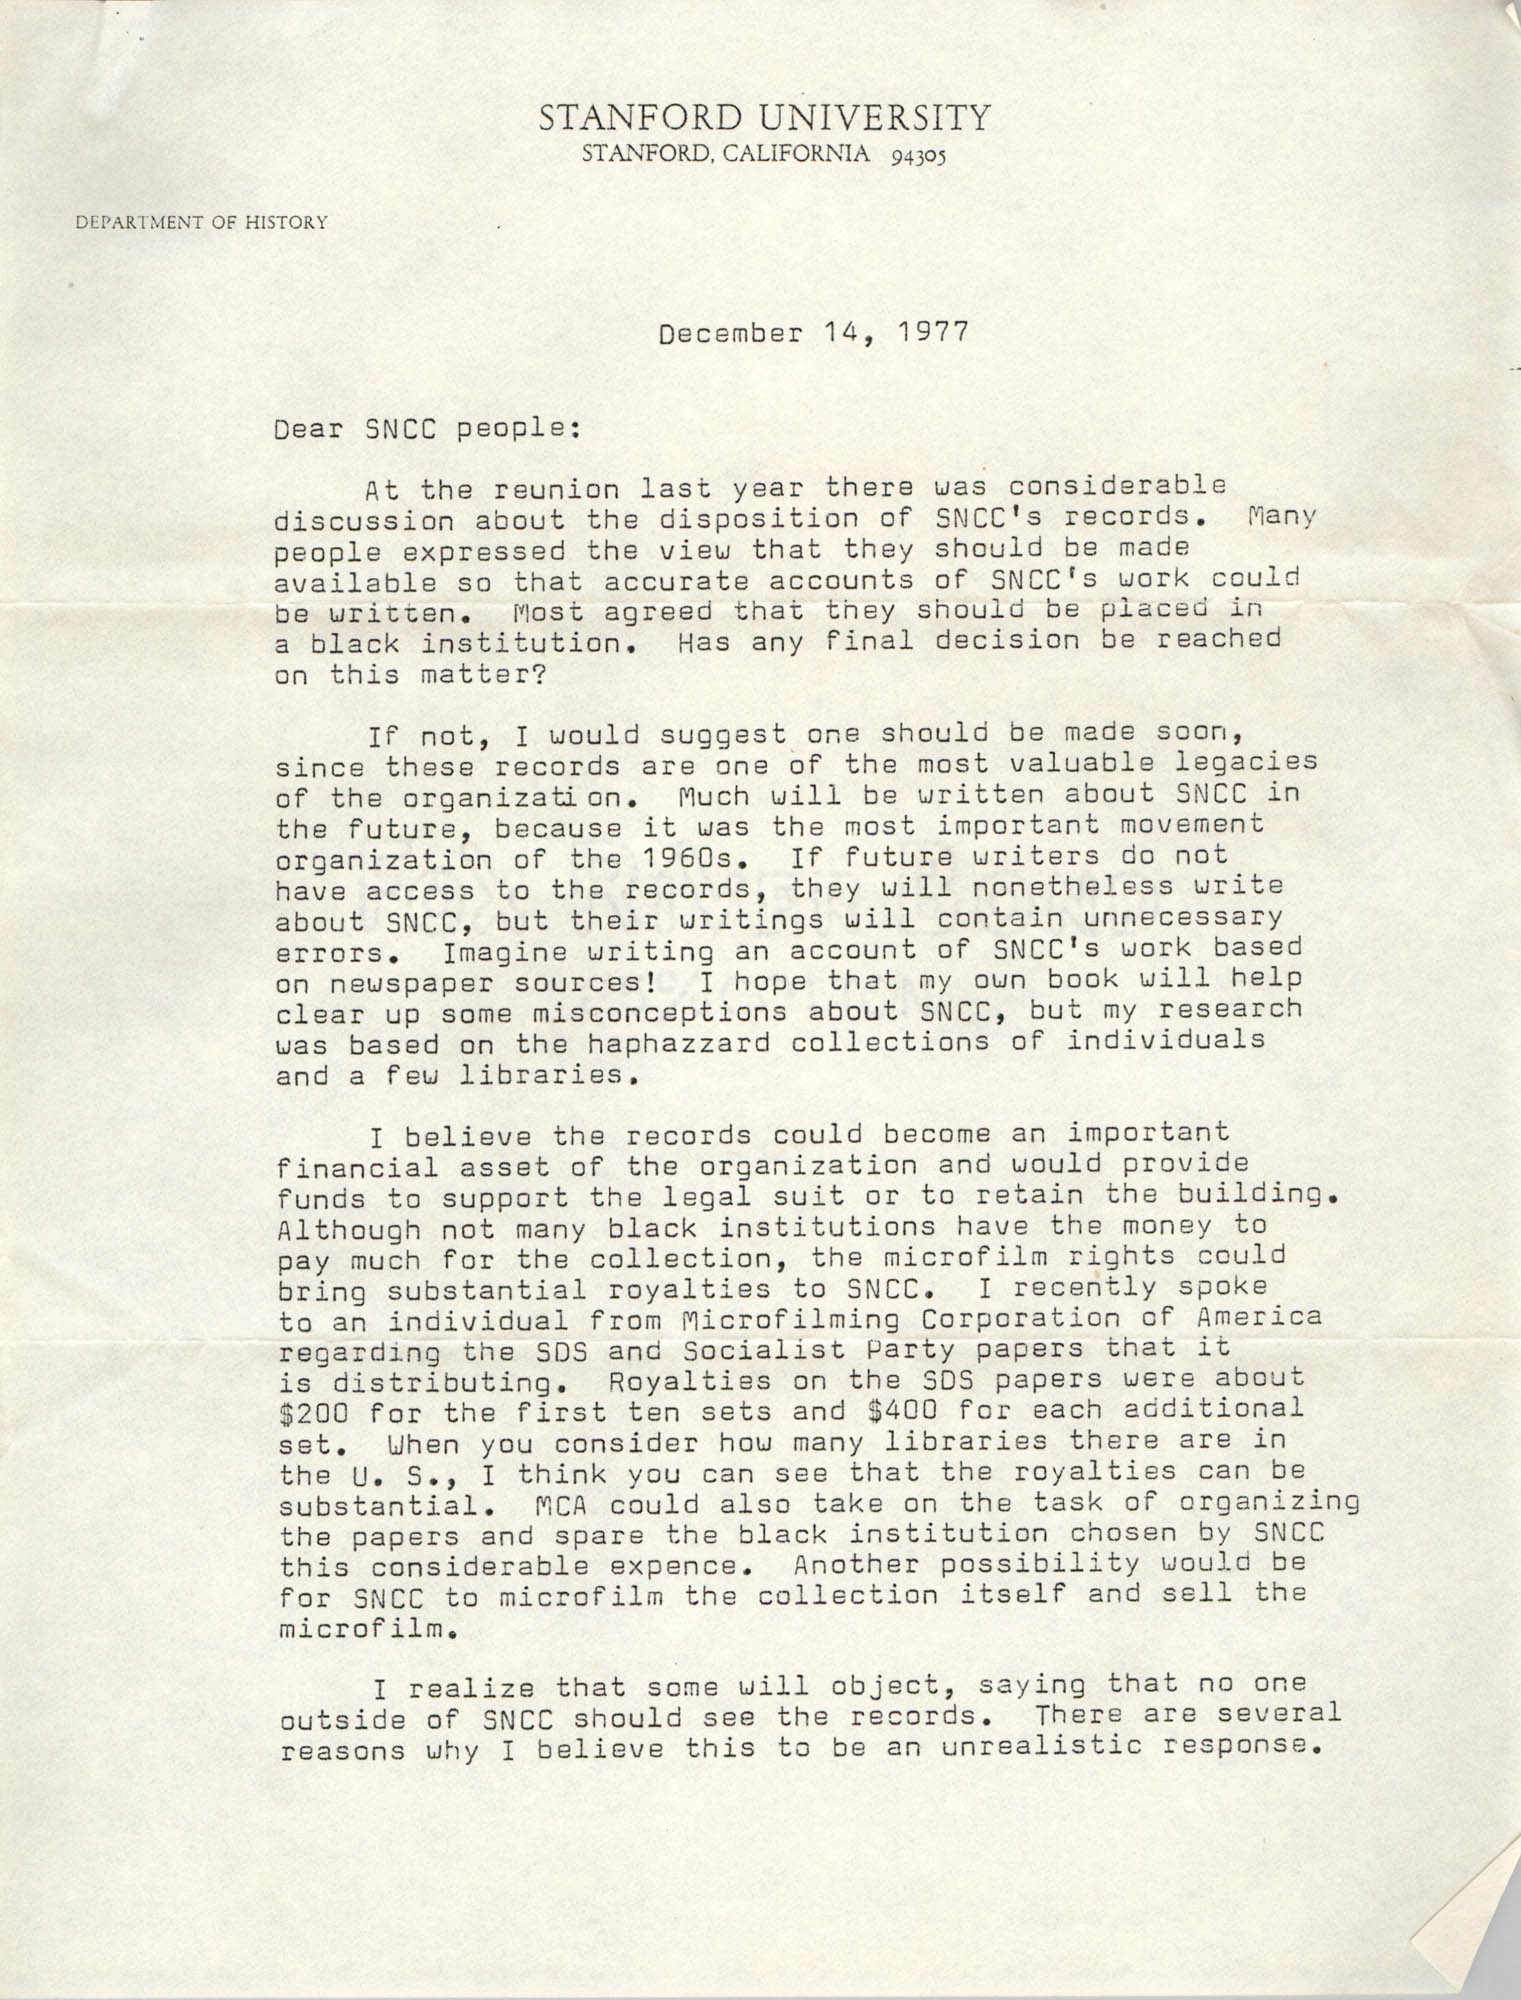 Letter from Clay Carson to Student Nonviolent Coordinating Committee, December 14, 1977